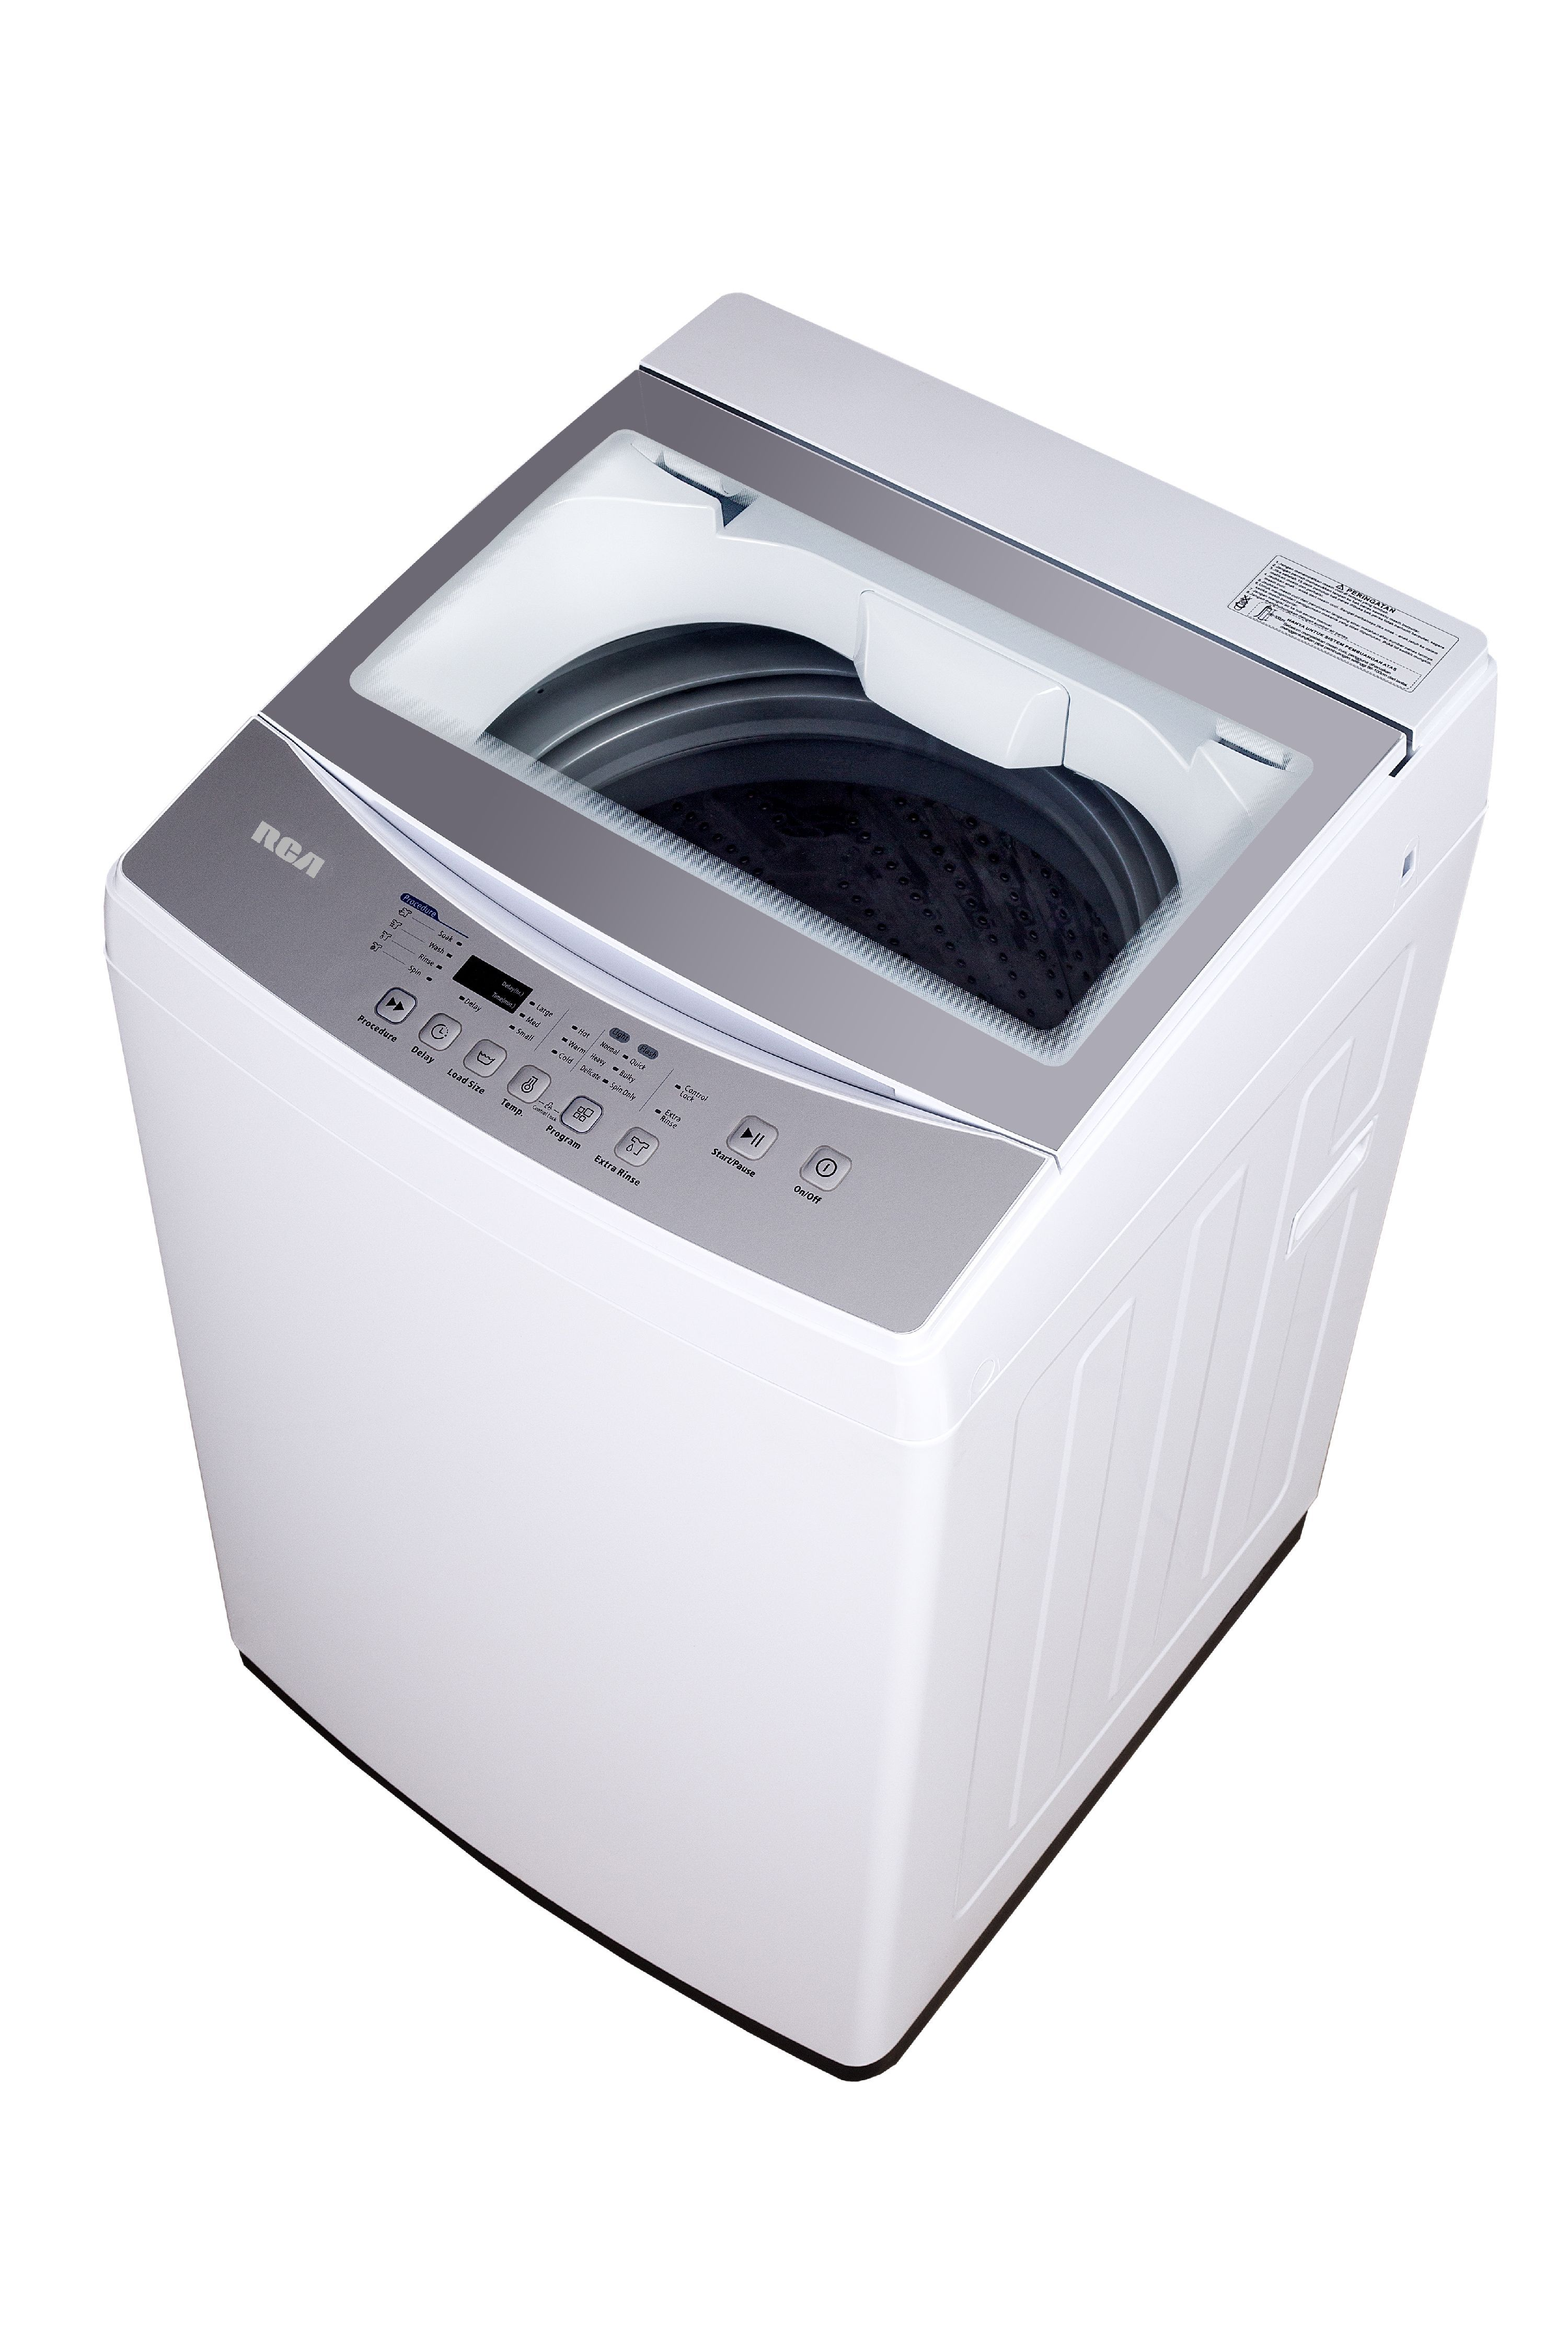 Rca 2 0 Cu Ft Portable Washer Rpw210 White Walmart Com In 2021 Portable Washer Portable Washing Machine Portable Washer And Dryer